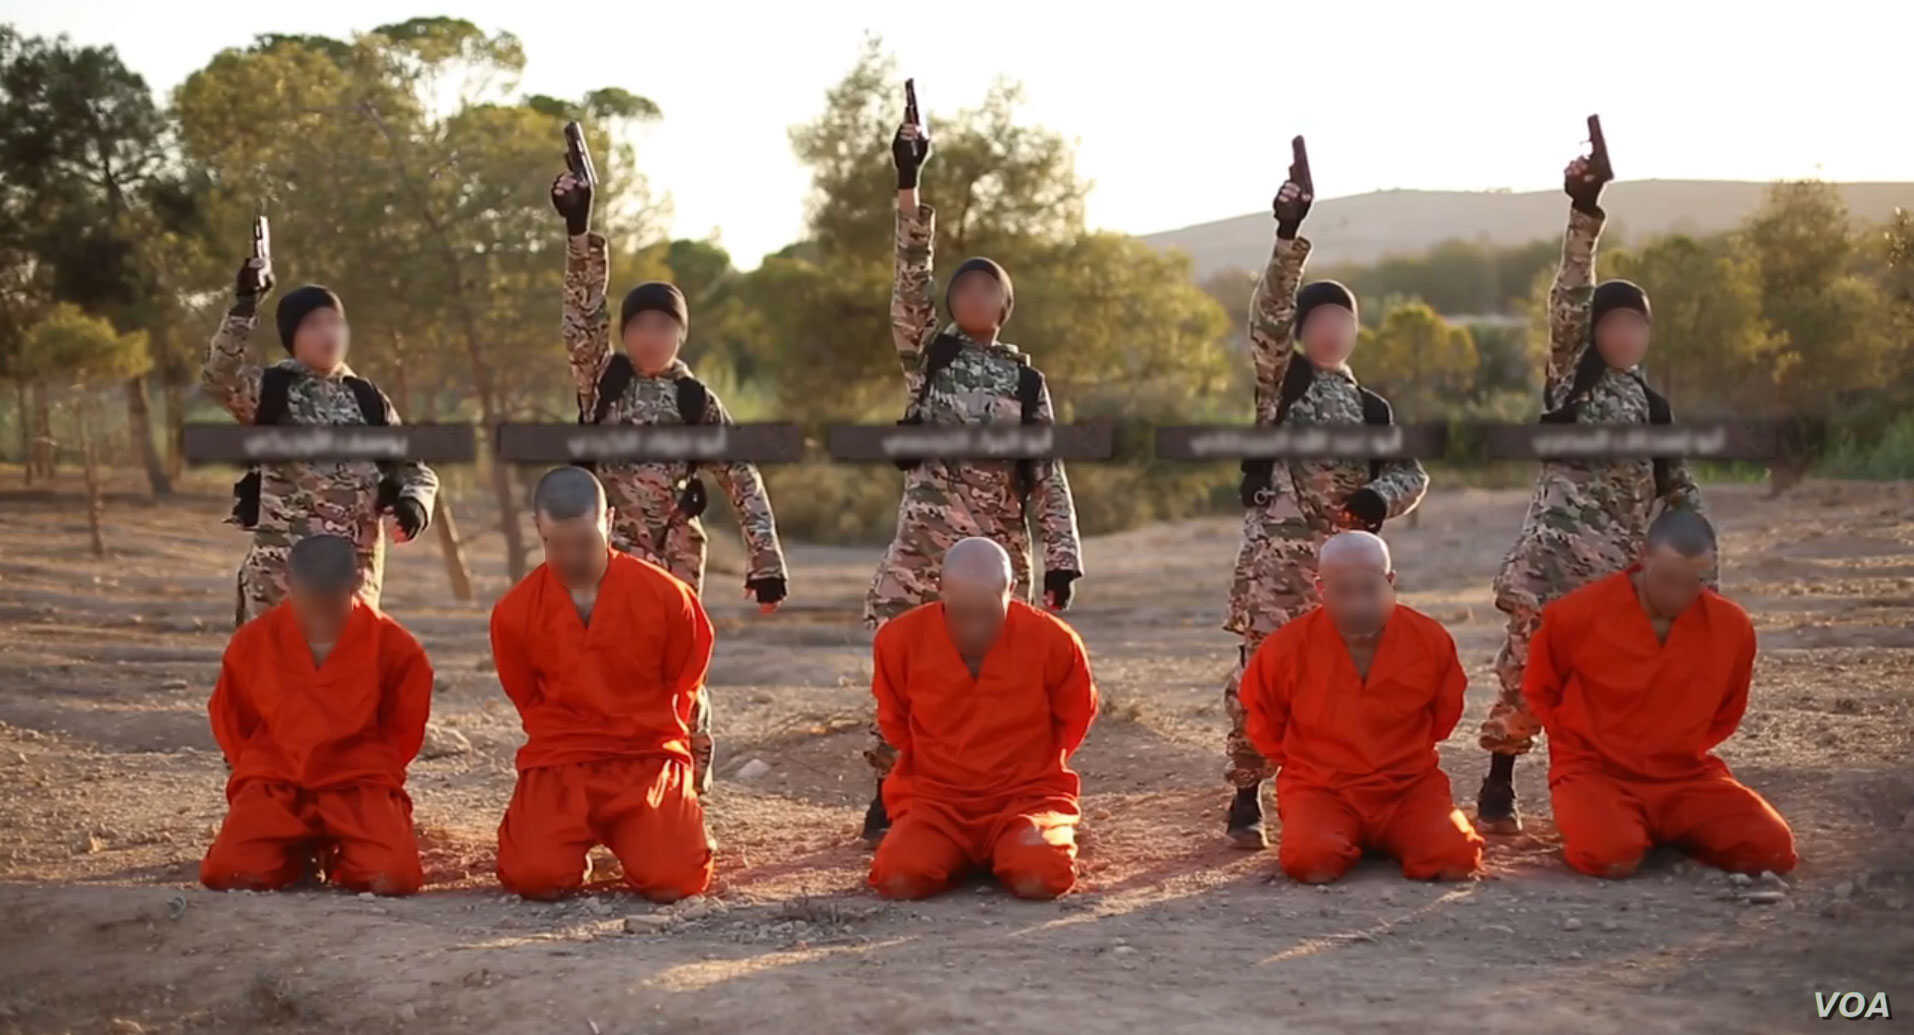 A screenshot from an Islamic State propaganda video that purports to show young boys executing Kurdish fighters.